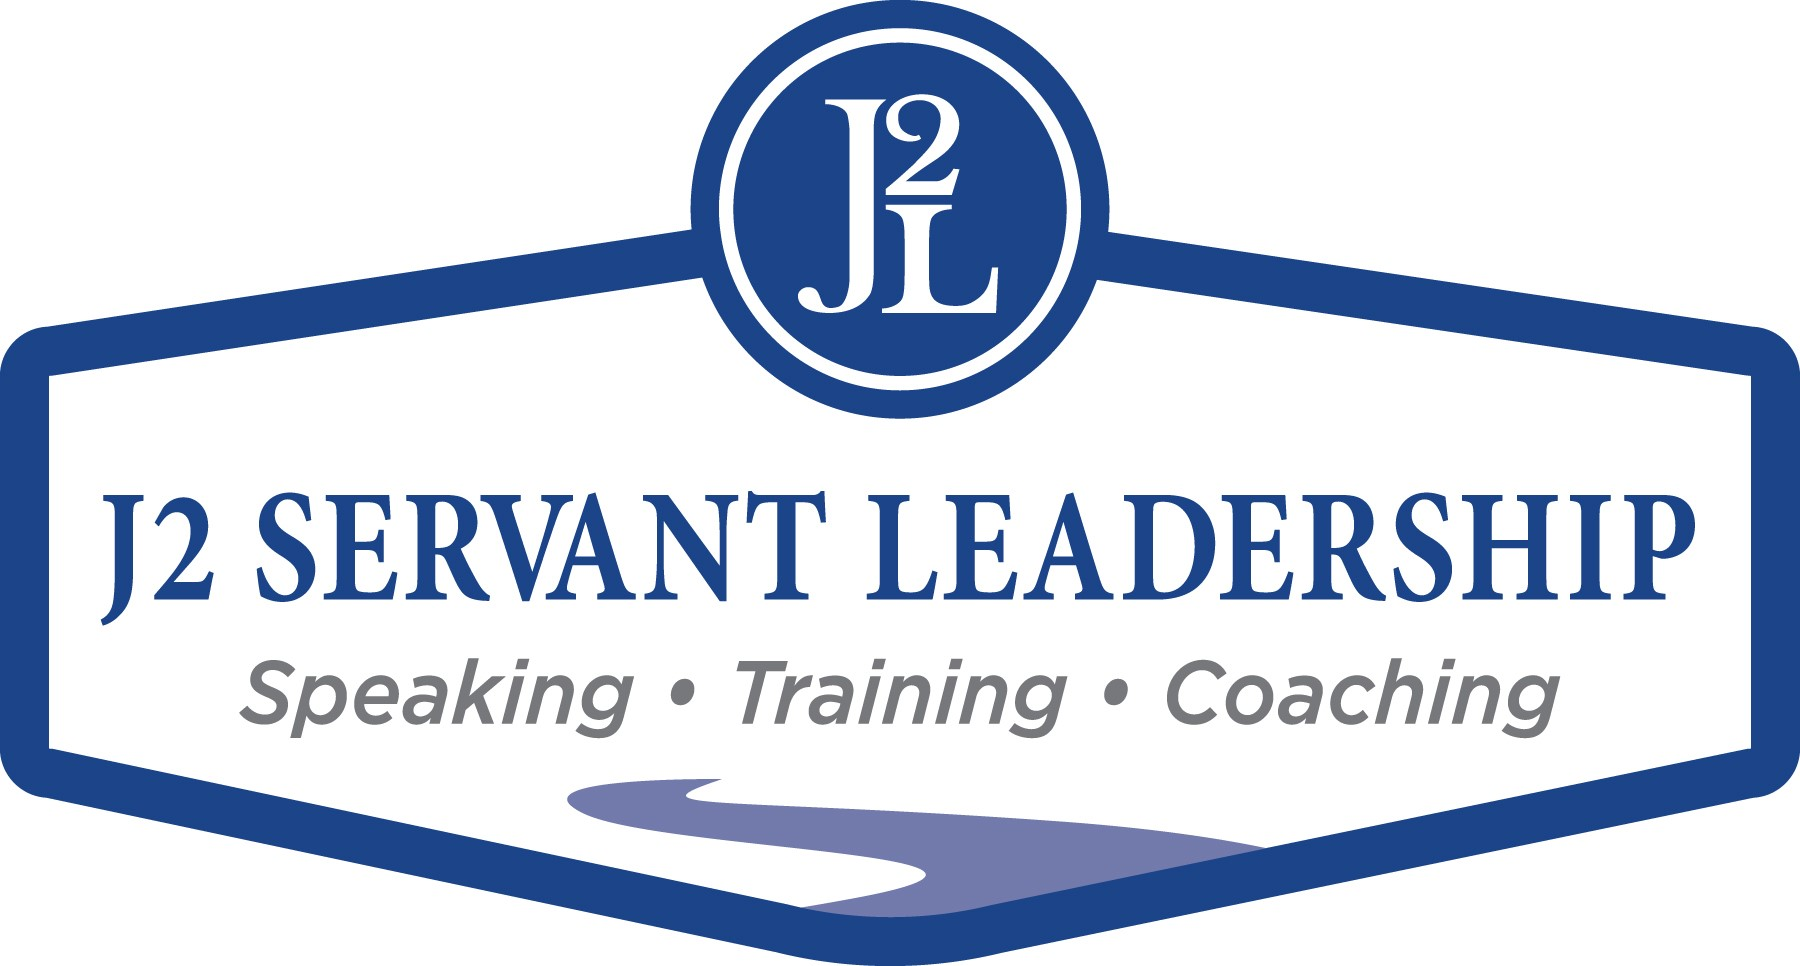 J2 Servant Leadership